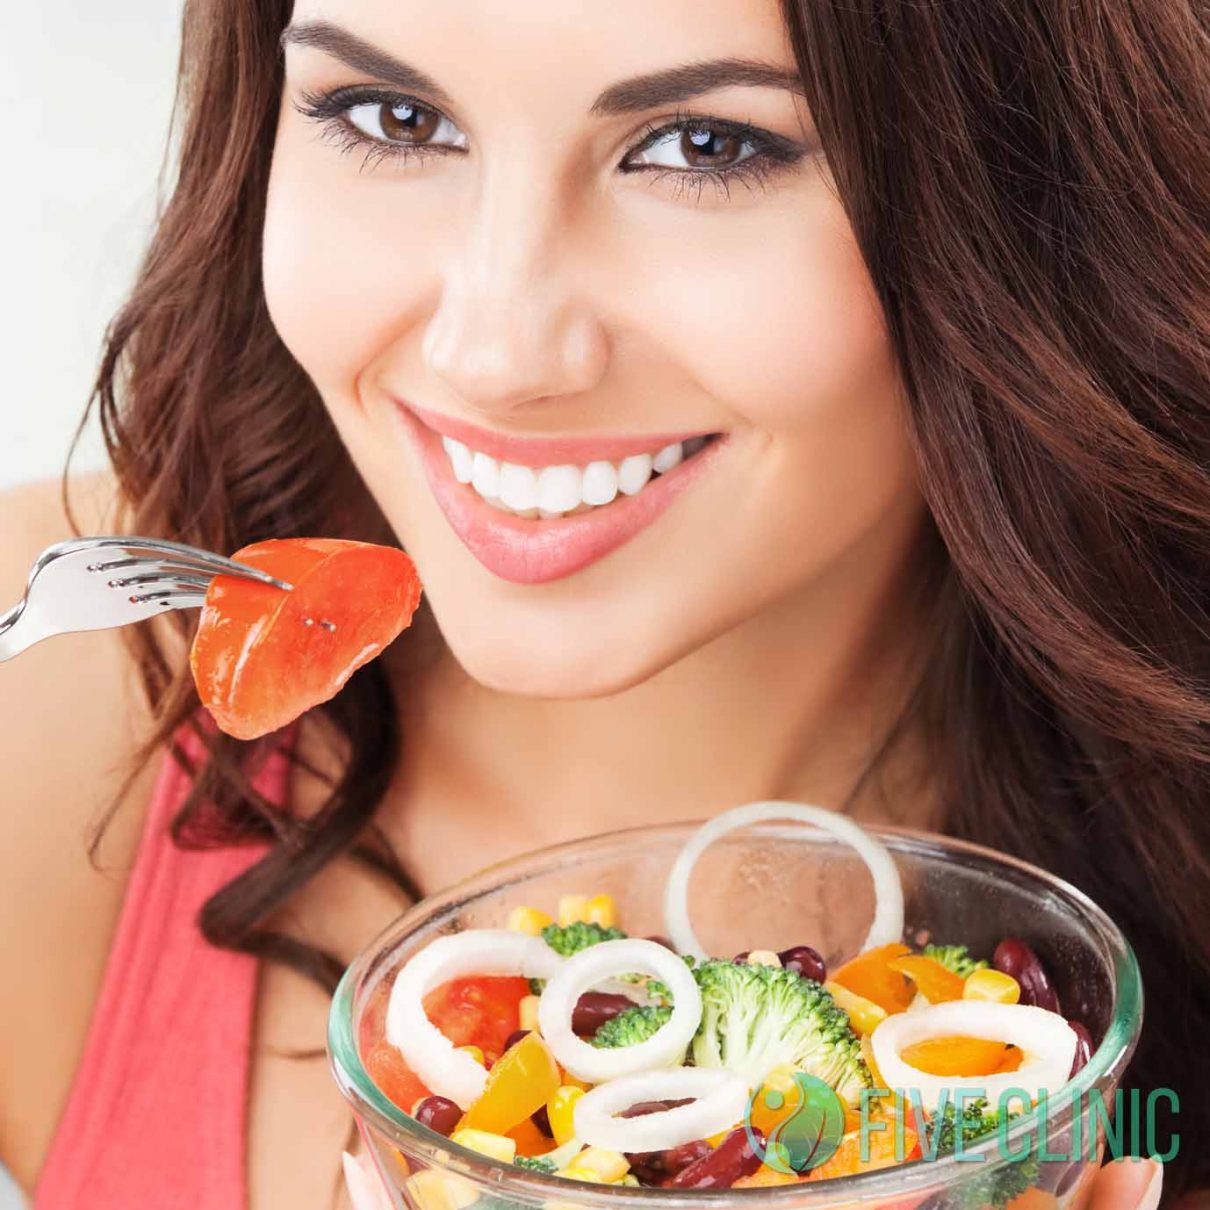 woman with vegetarian vegetable salad